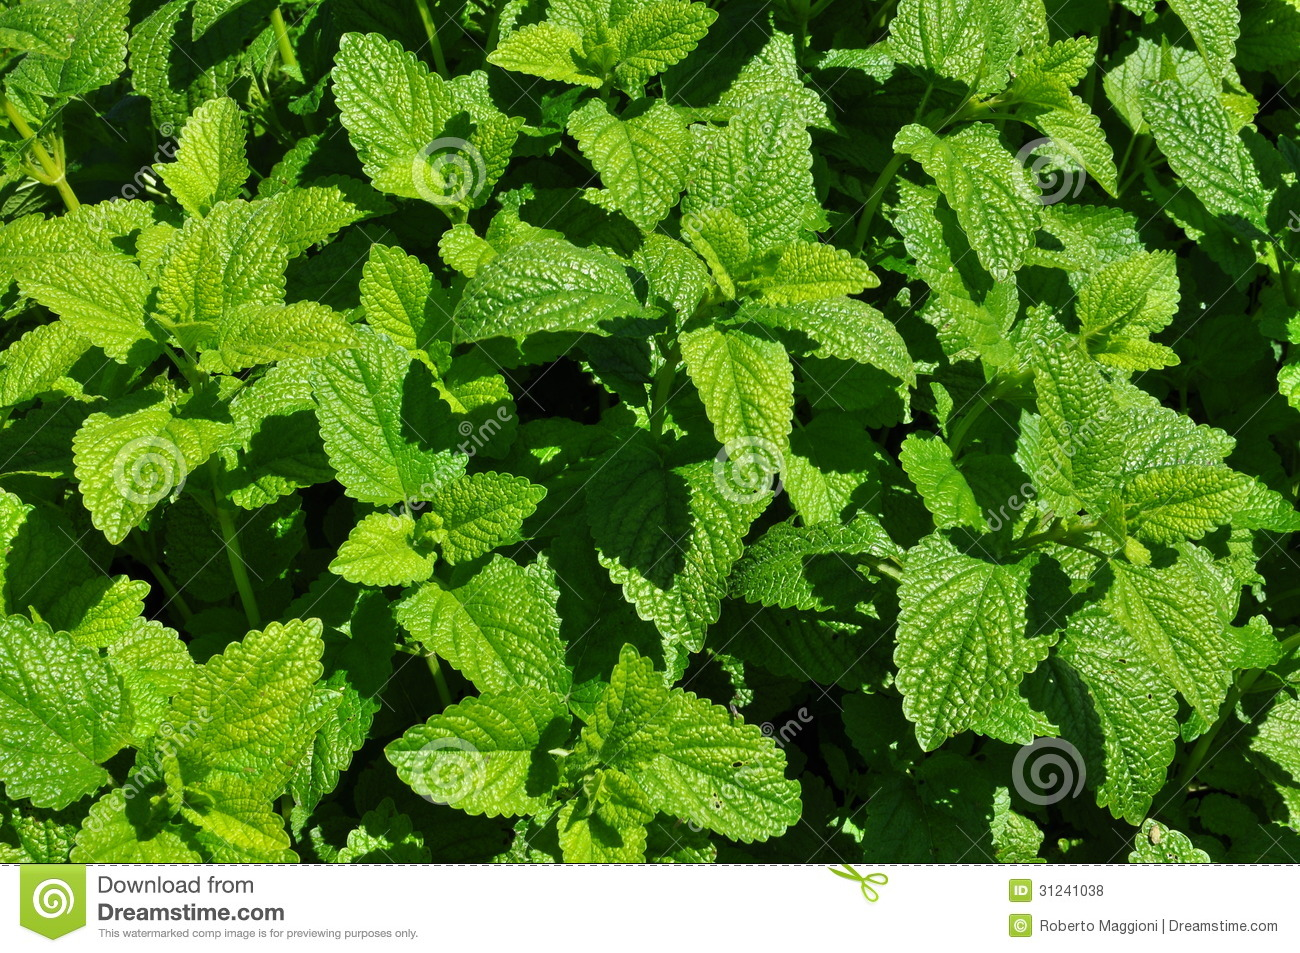 Mint Growing and Harvest Information | Growing Herbs